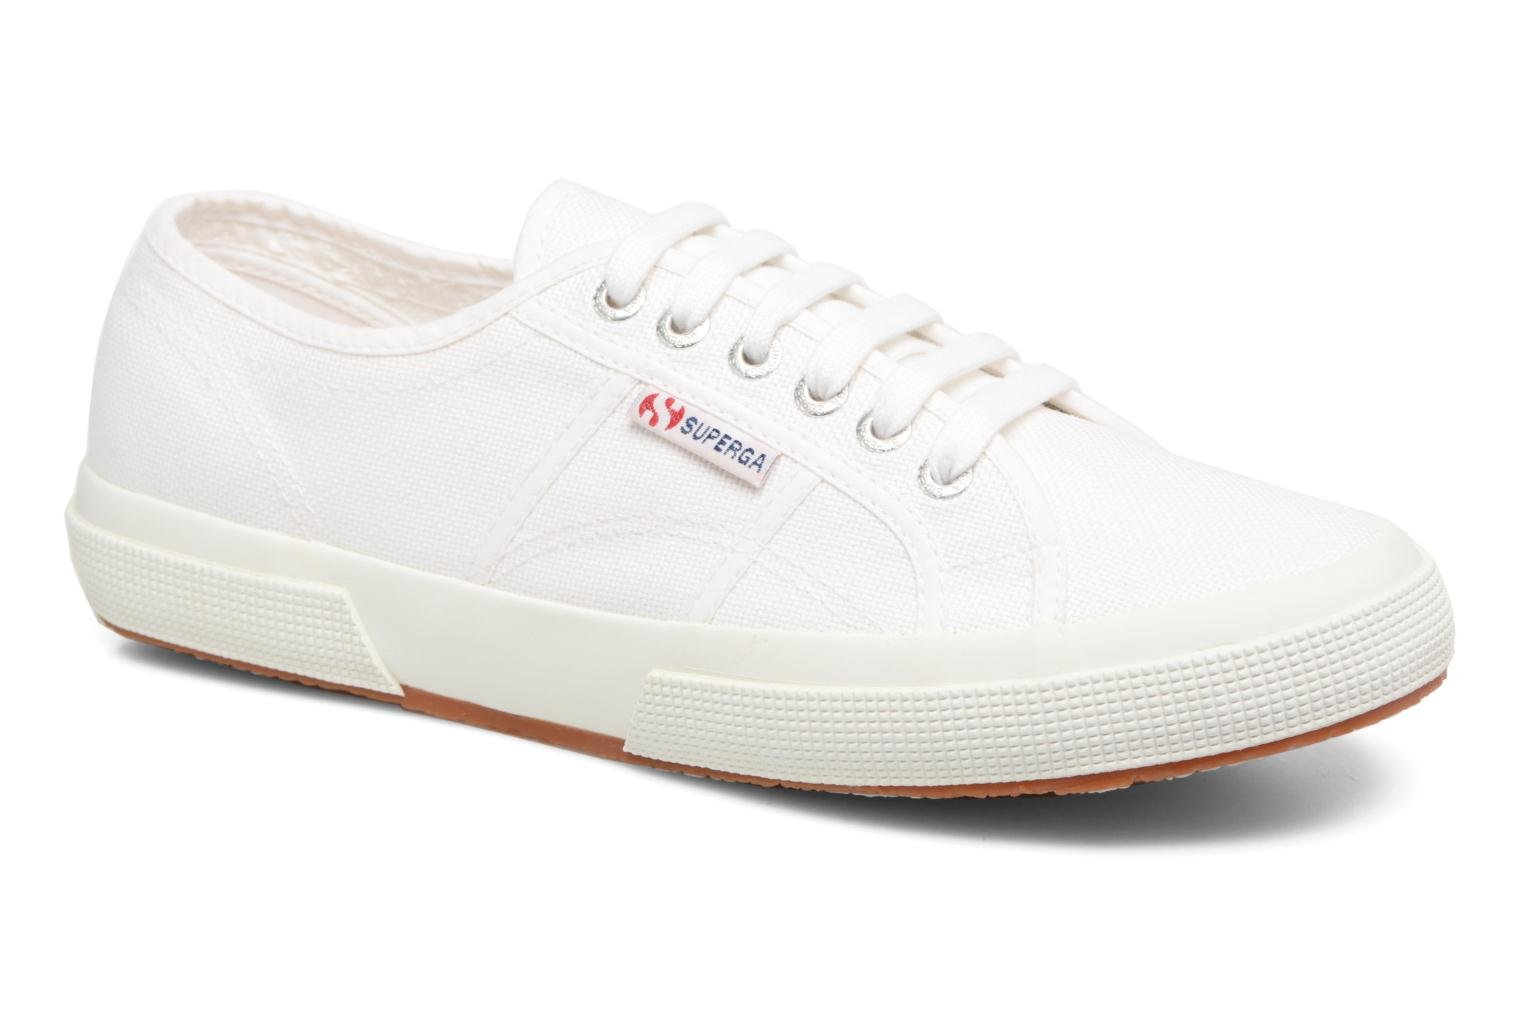 Marques Chaussure homme Superga homme 2750 Cotu M White